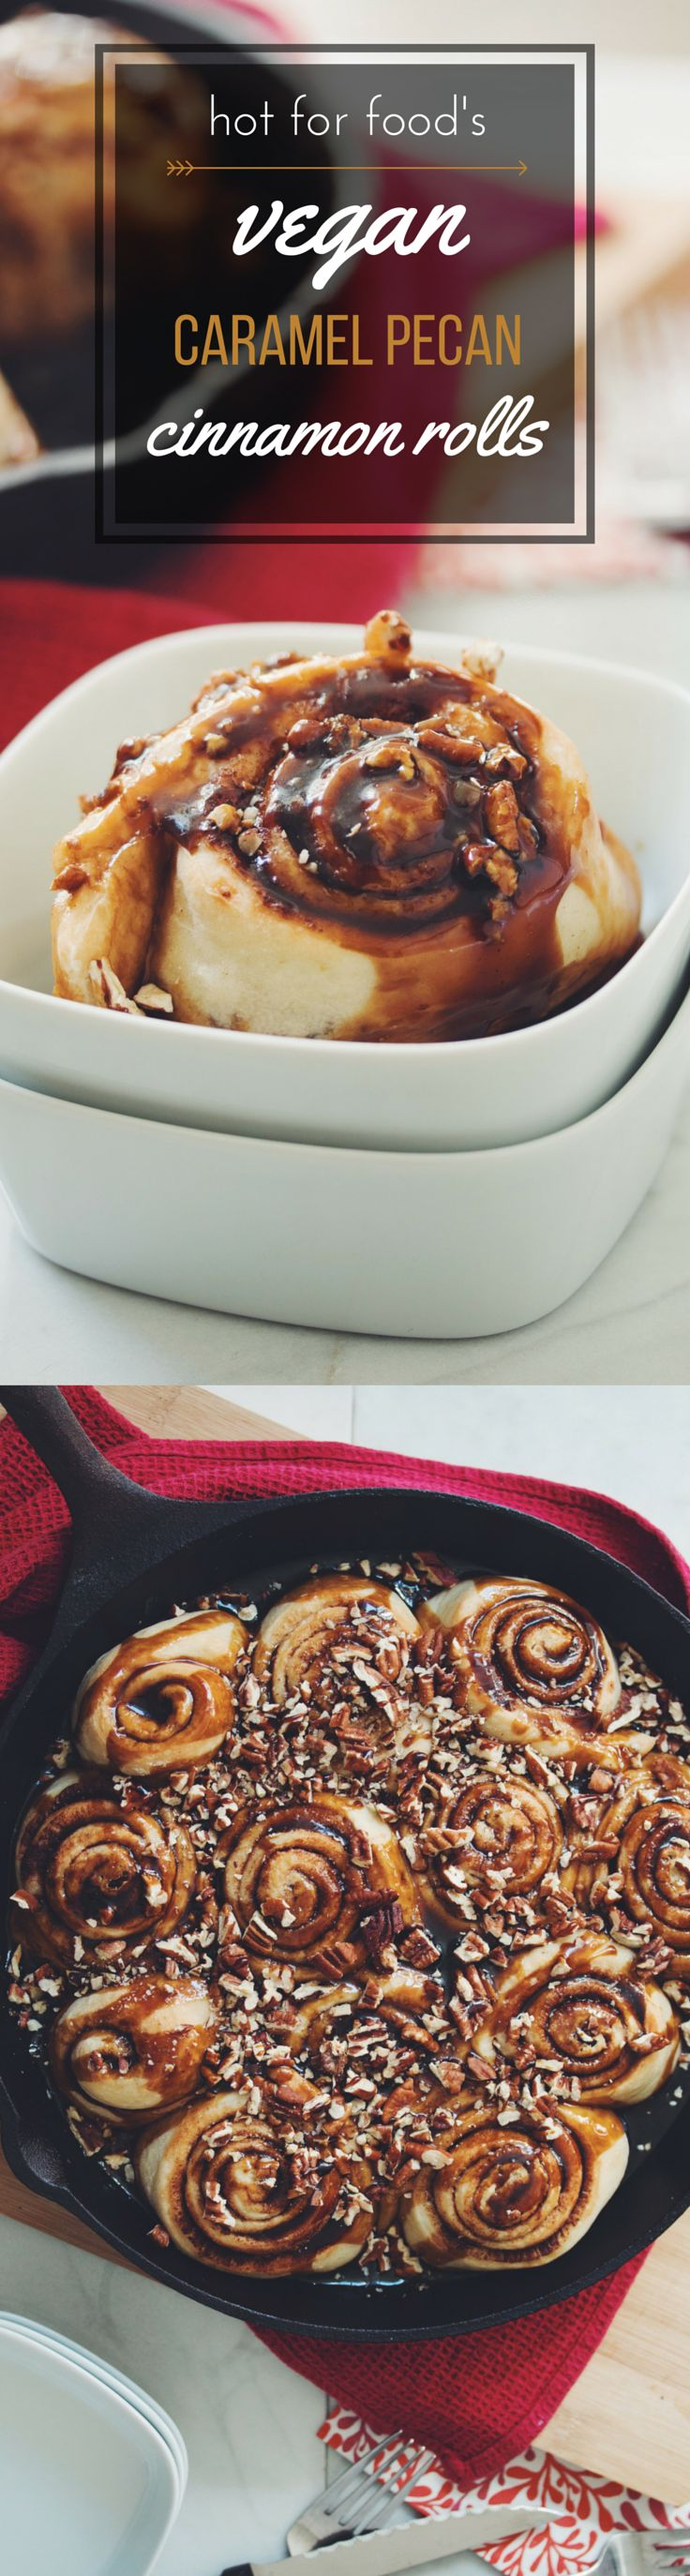 vegan caramel pecan cinnamon rolls | RECIPE on hotforfoodblog.com